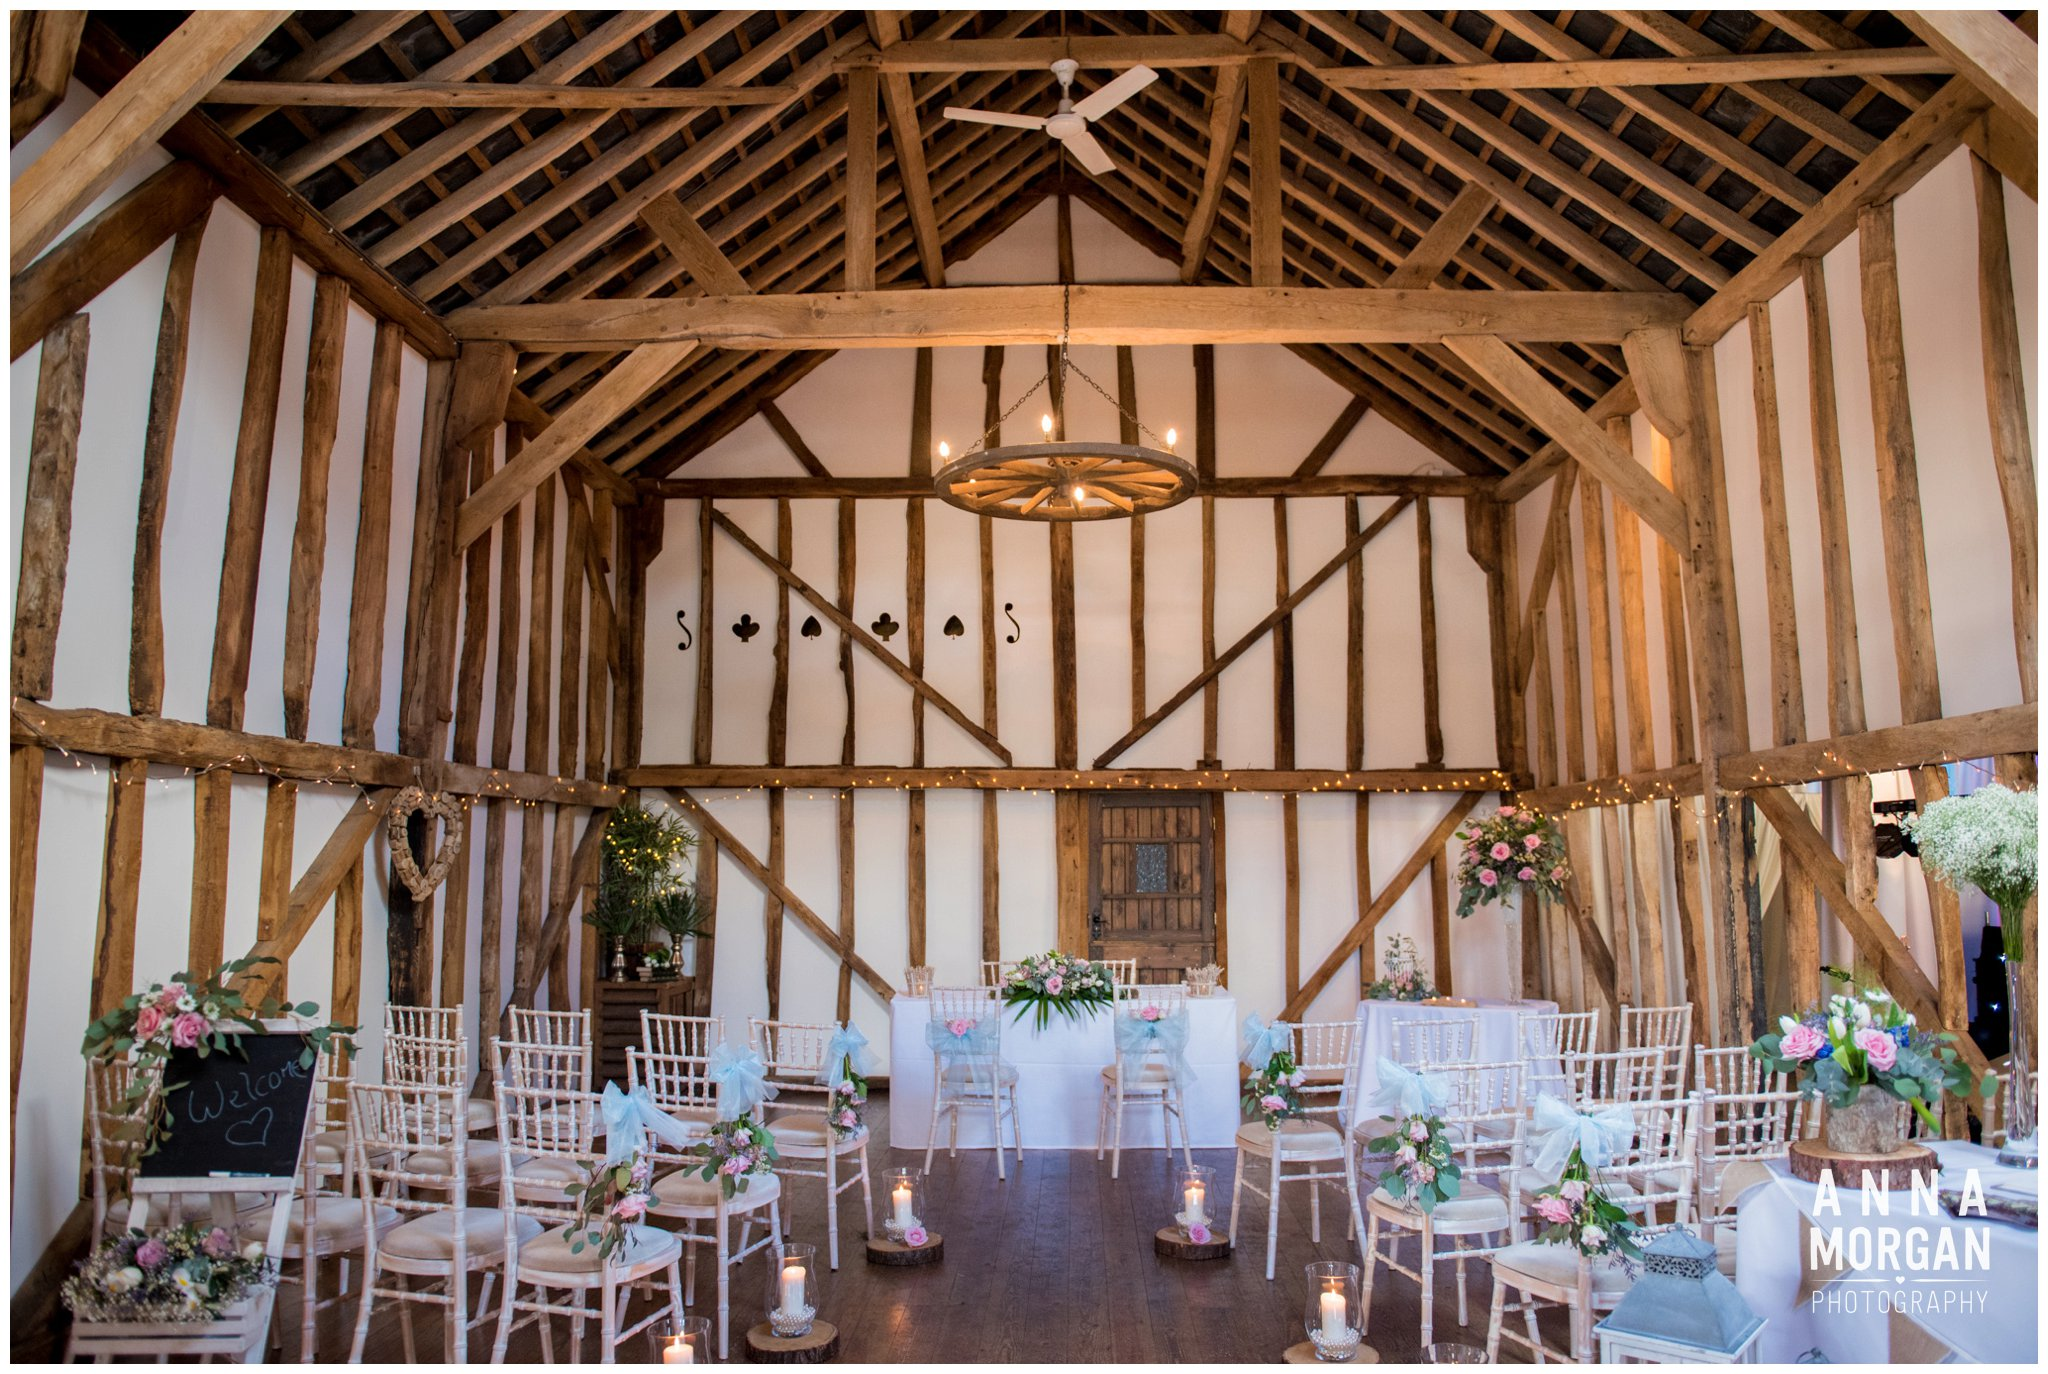 Pitt Hall Barn 2016 Spring Open Day Hampshire Wedding Venue